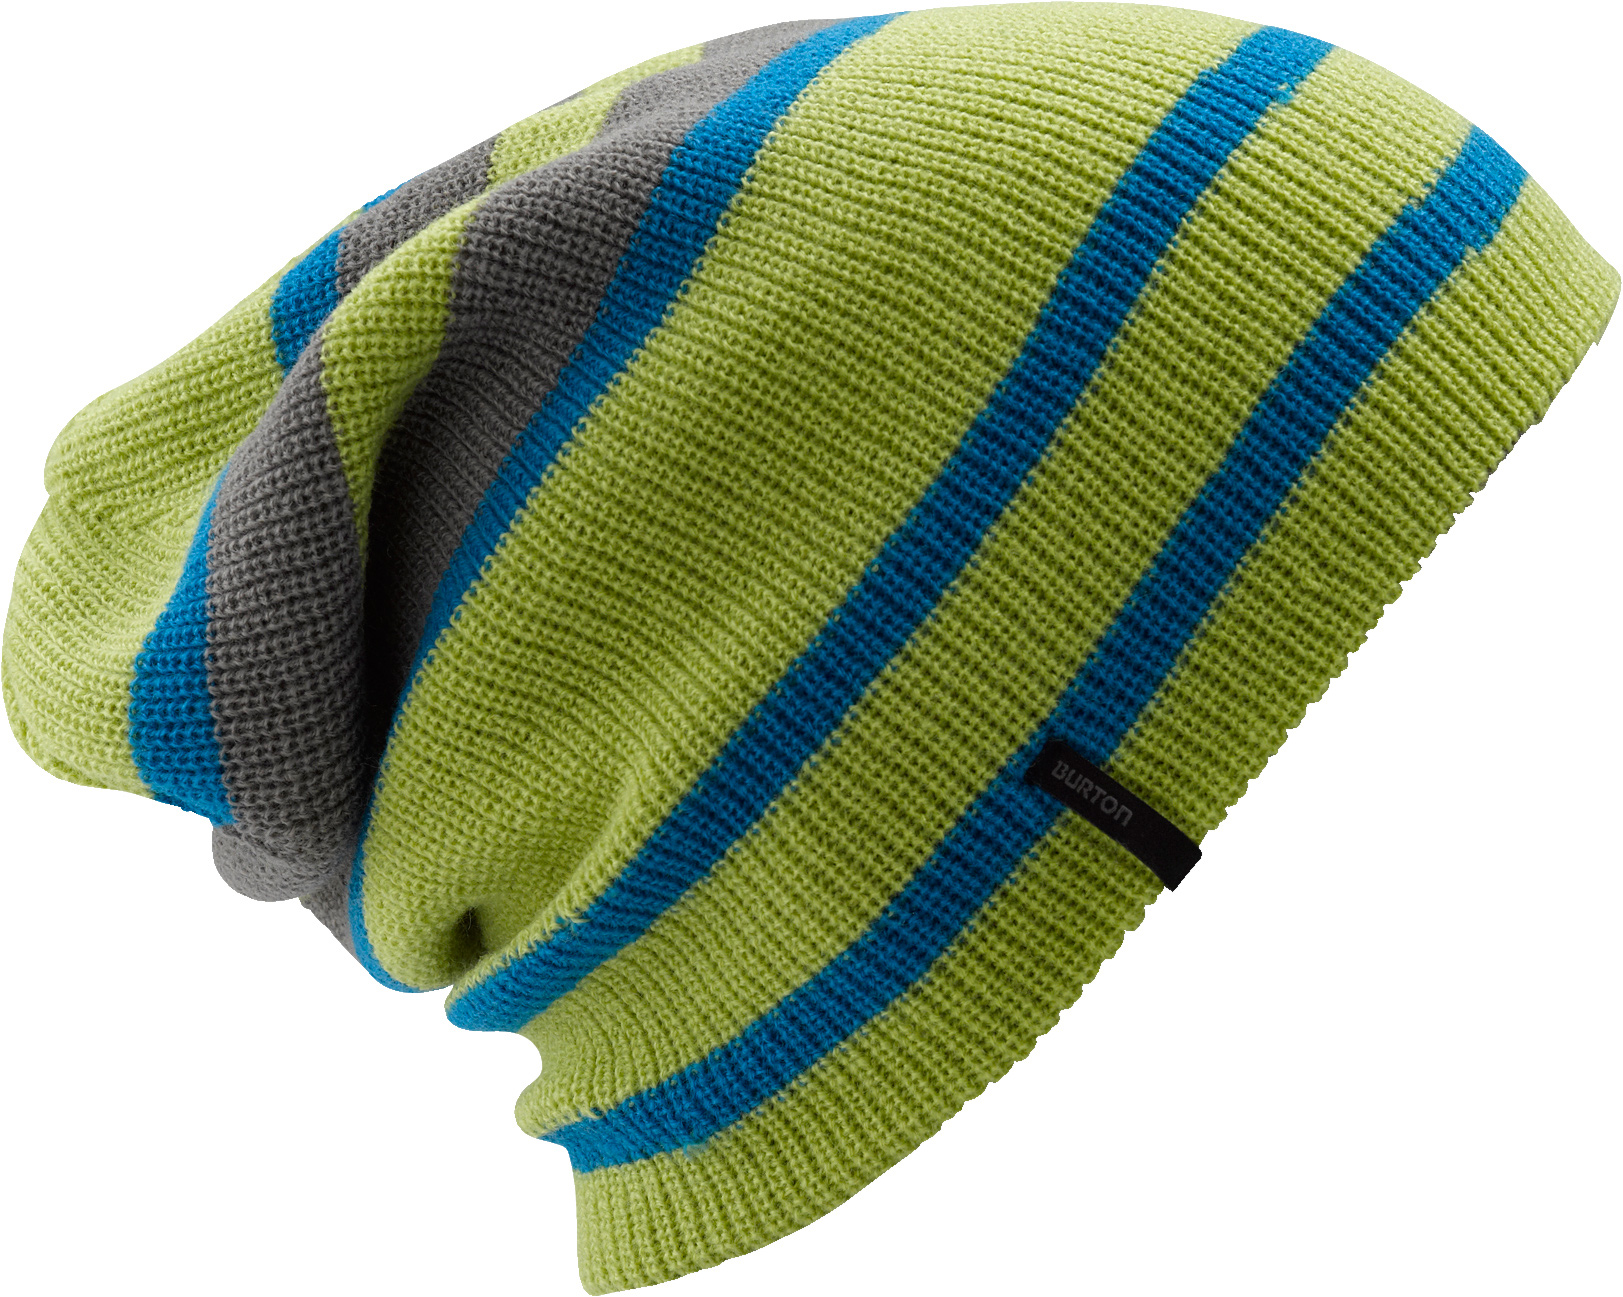 Snowboard Key Features of the Burton Whoudino Beanie: 100% Acrylic Solid with Striped Reverse Convertible Slouch or Skully Fit Four Ways to Wear it! - $25.00